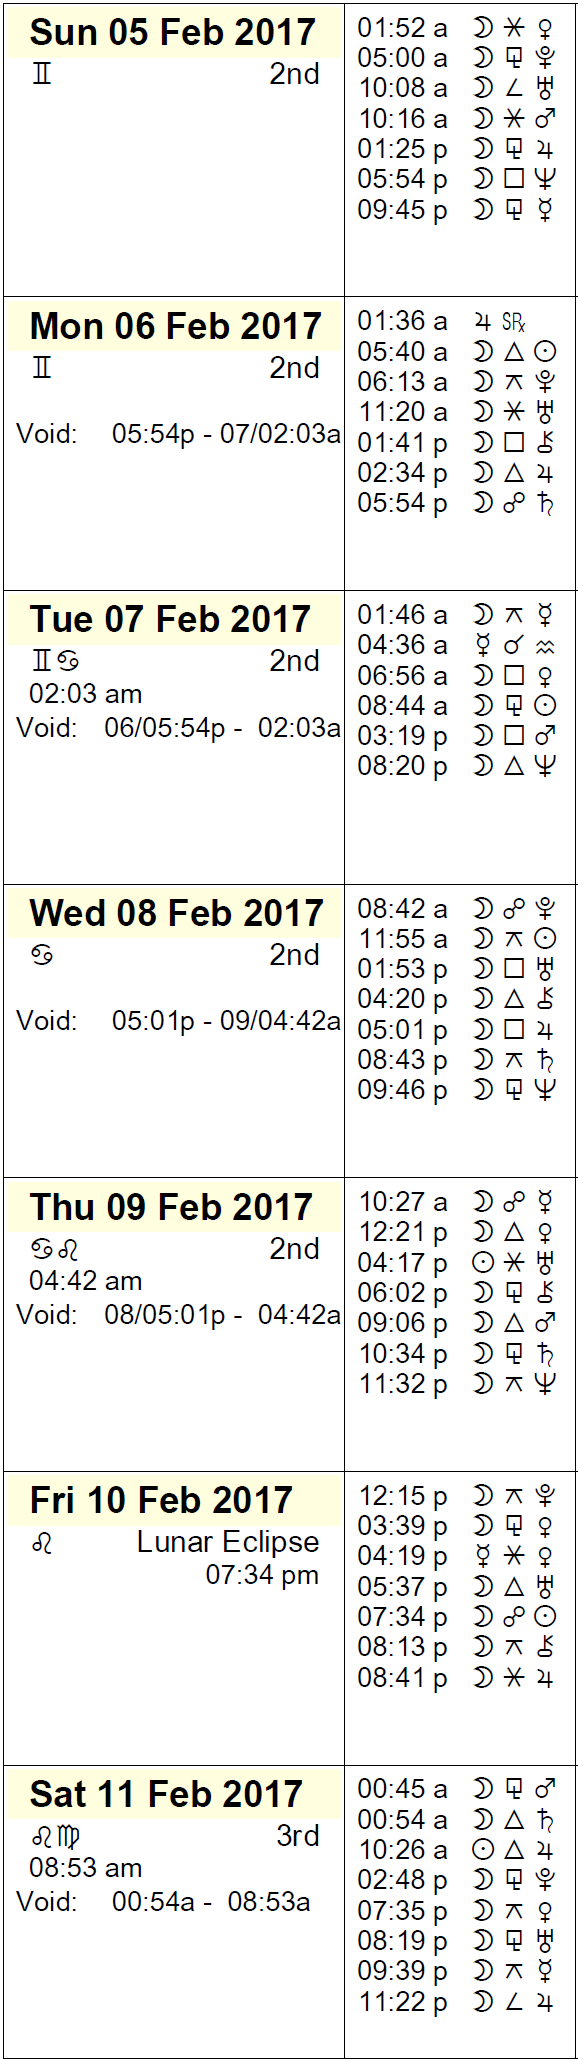 This Week in Astrology Calendar - February 5 to 11, 2017